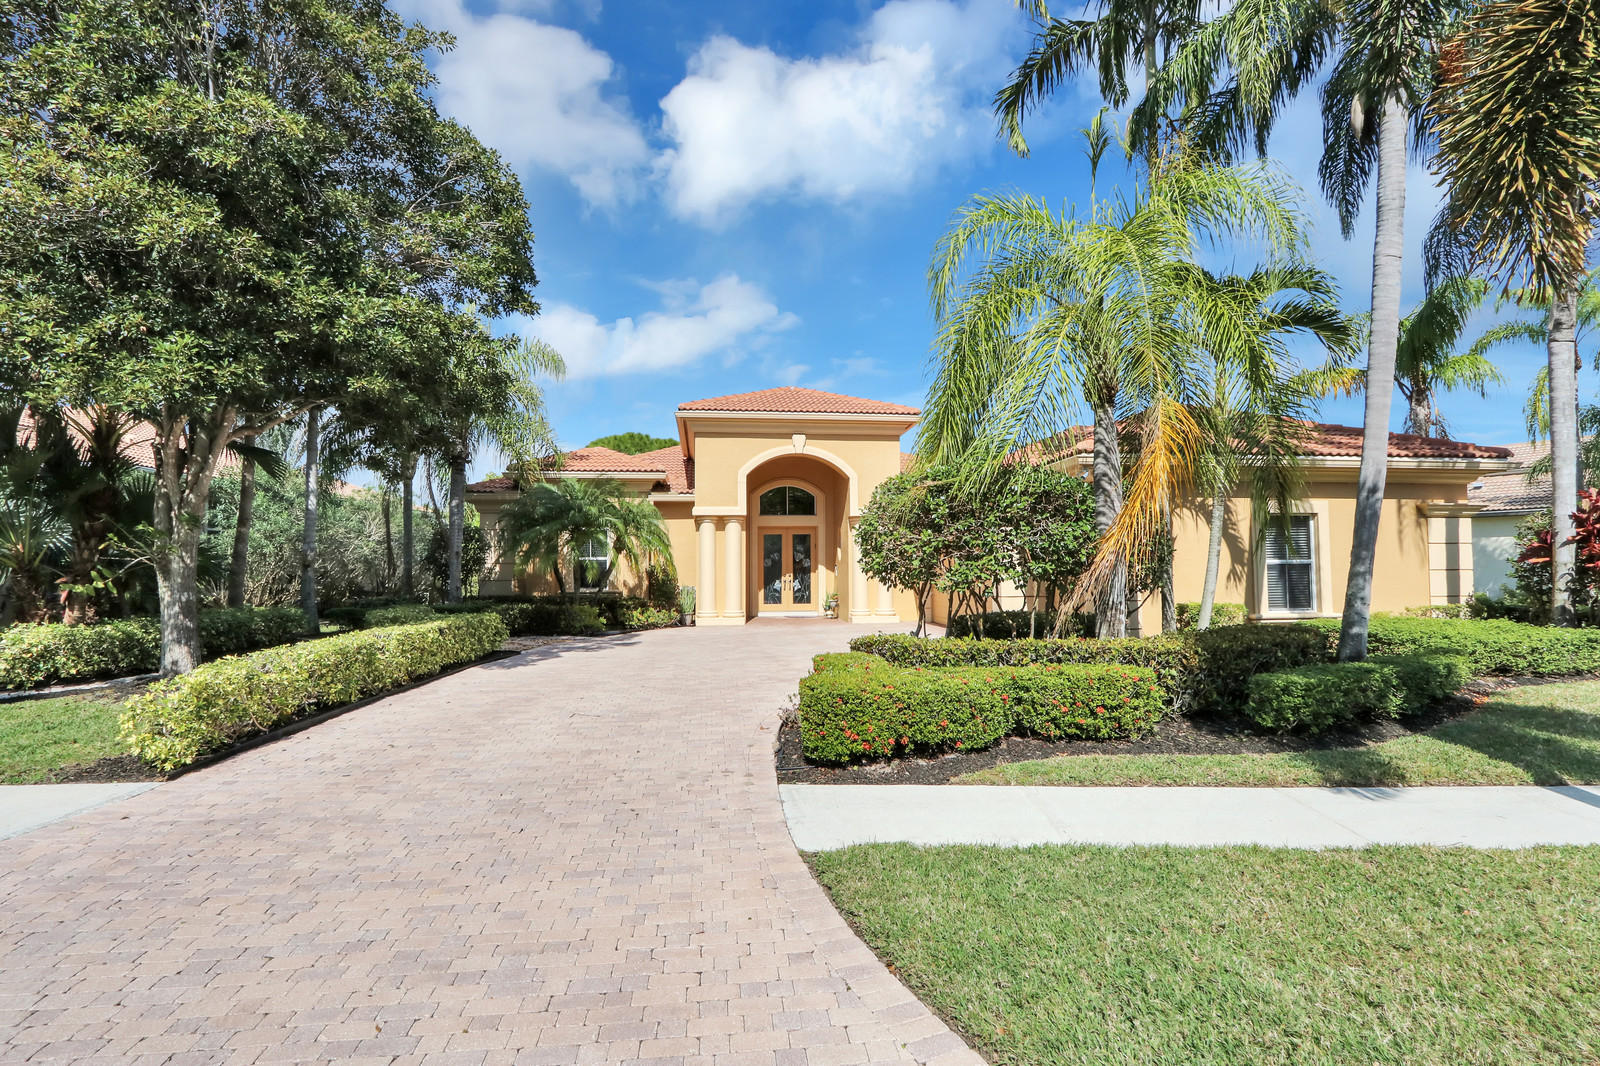 9020 Lakes Boulevard, West Palm Beach, Florida 33412, 3 Bedrooms Bedrooms, ,3 BathroomsBathrooms,A,Single family,Lakes,RX-10597976